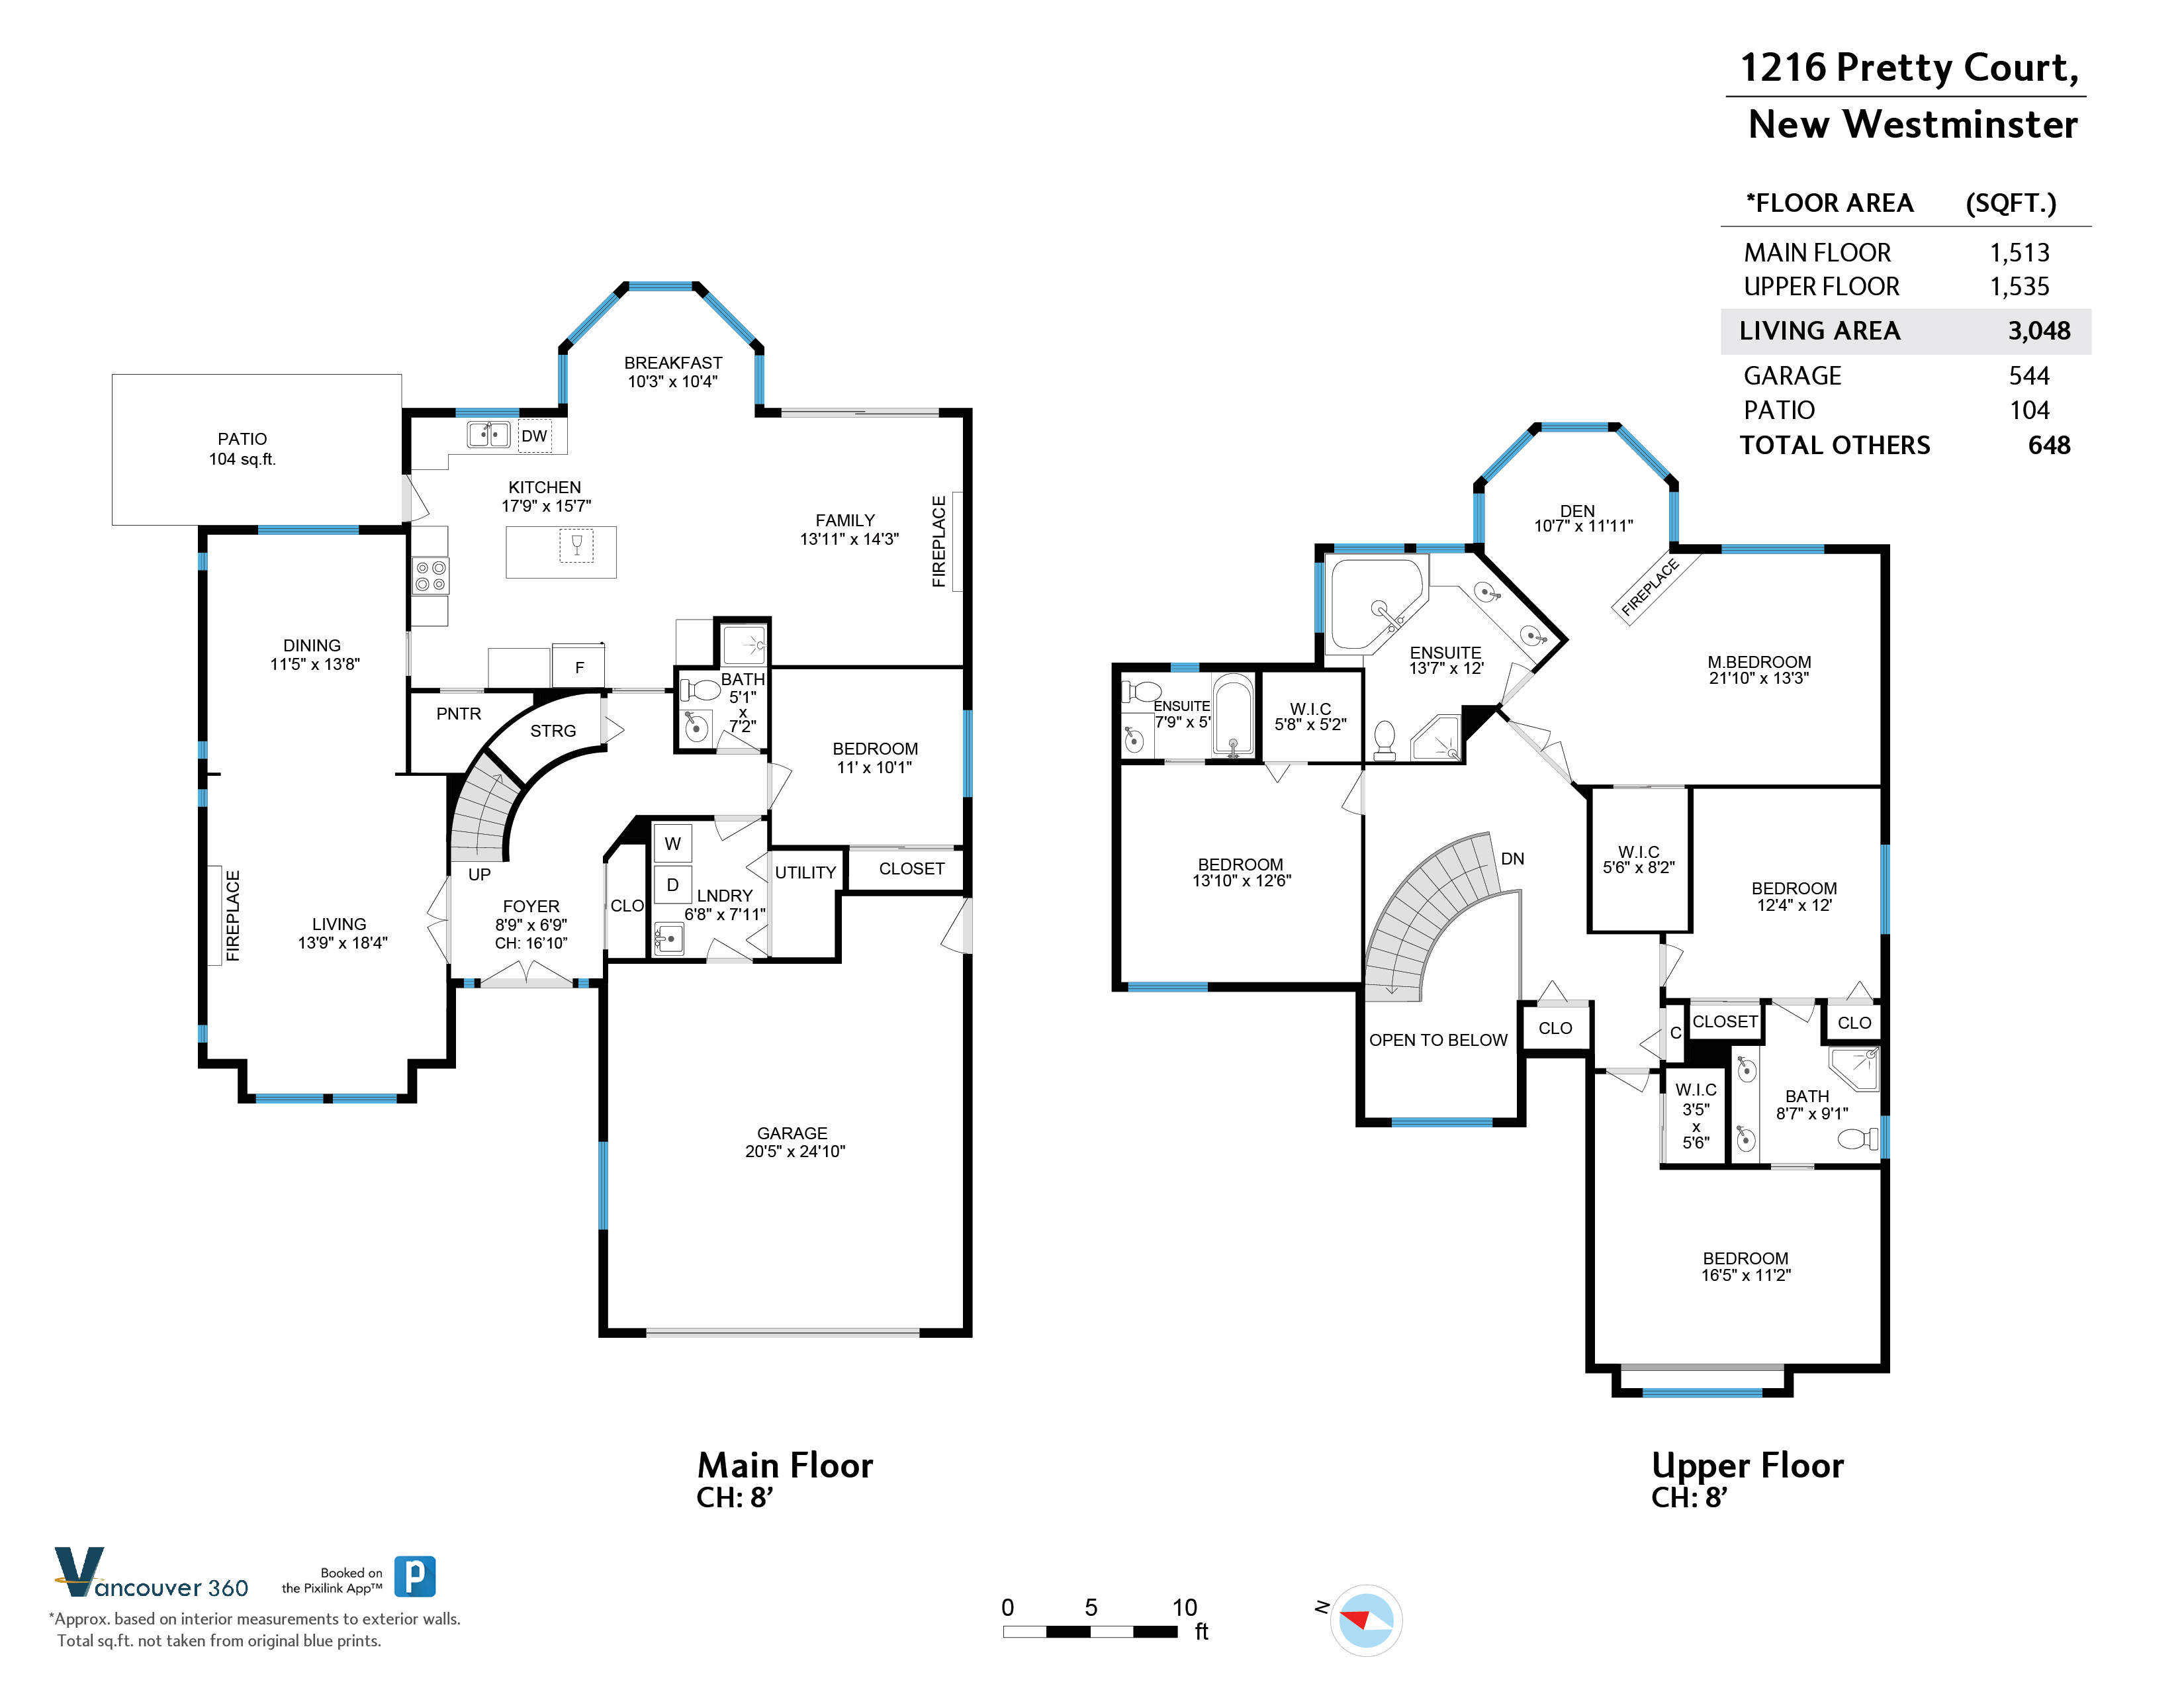 1216 PRETTY COURT, New Westminster, BC Floor Plan